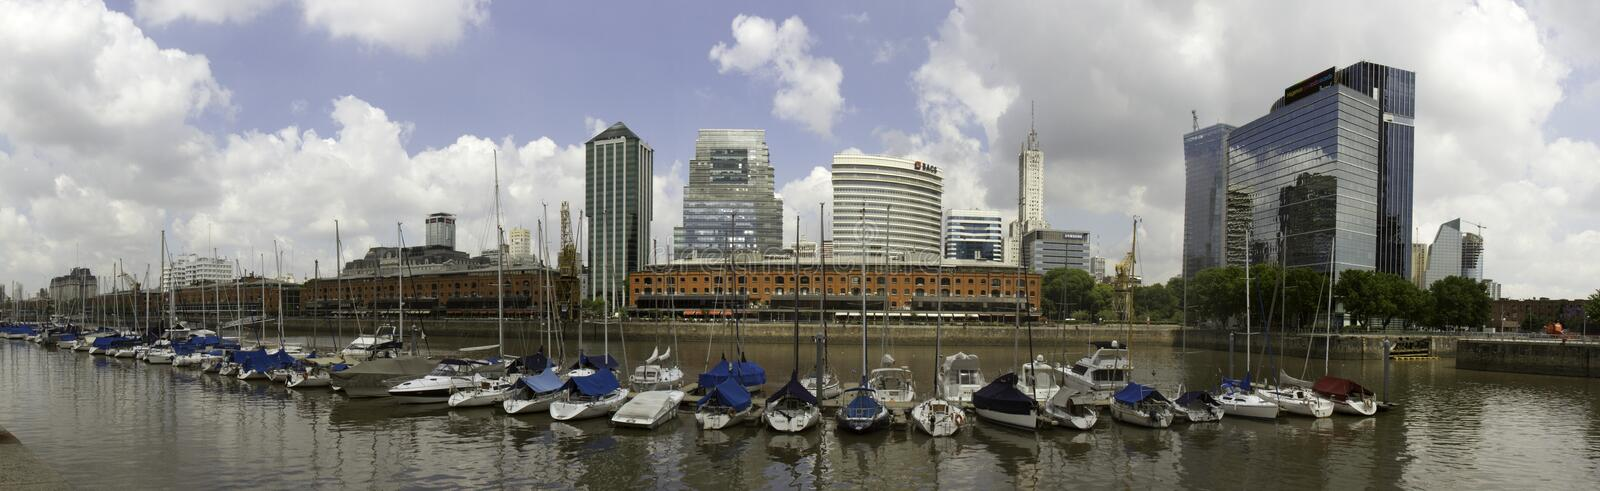 Panorama Puerto Madero, Buenos Aires, Argentina royalty free stock photography